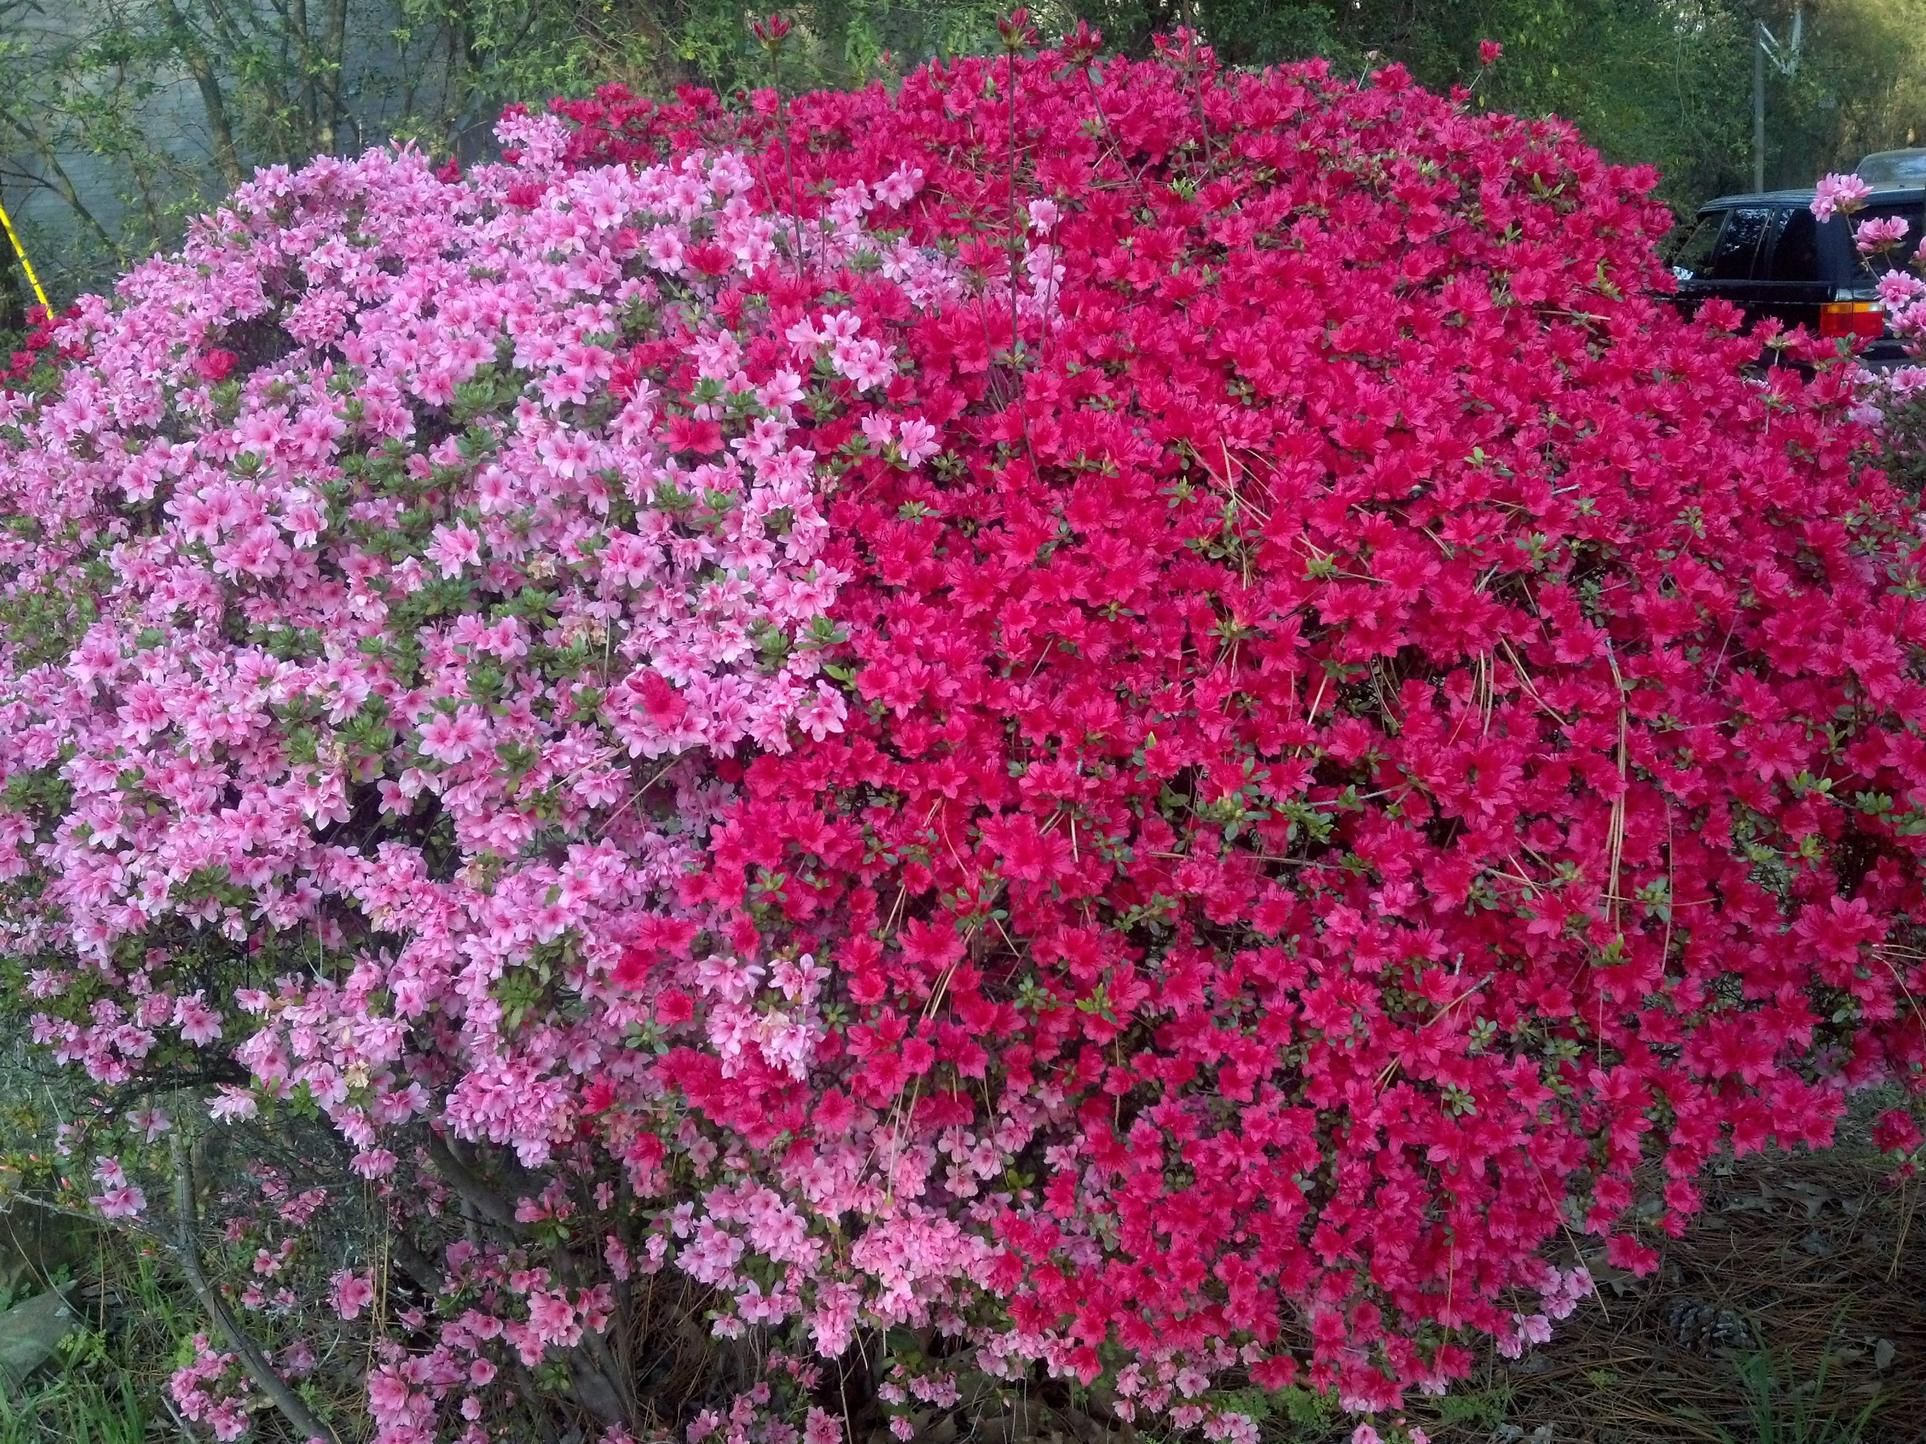 Pink And Red Azalea Bushes In My Front Yard Looks Like One Big